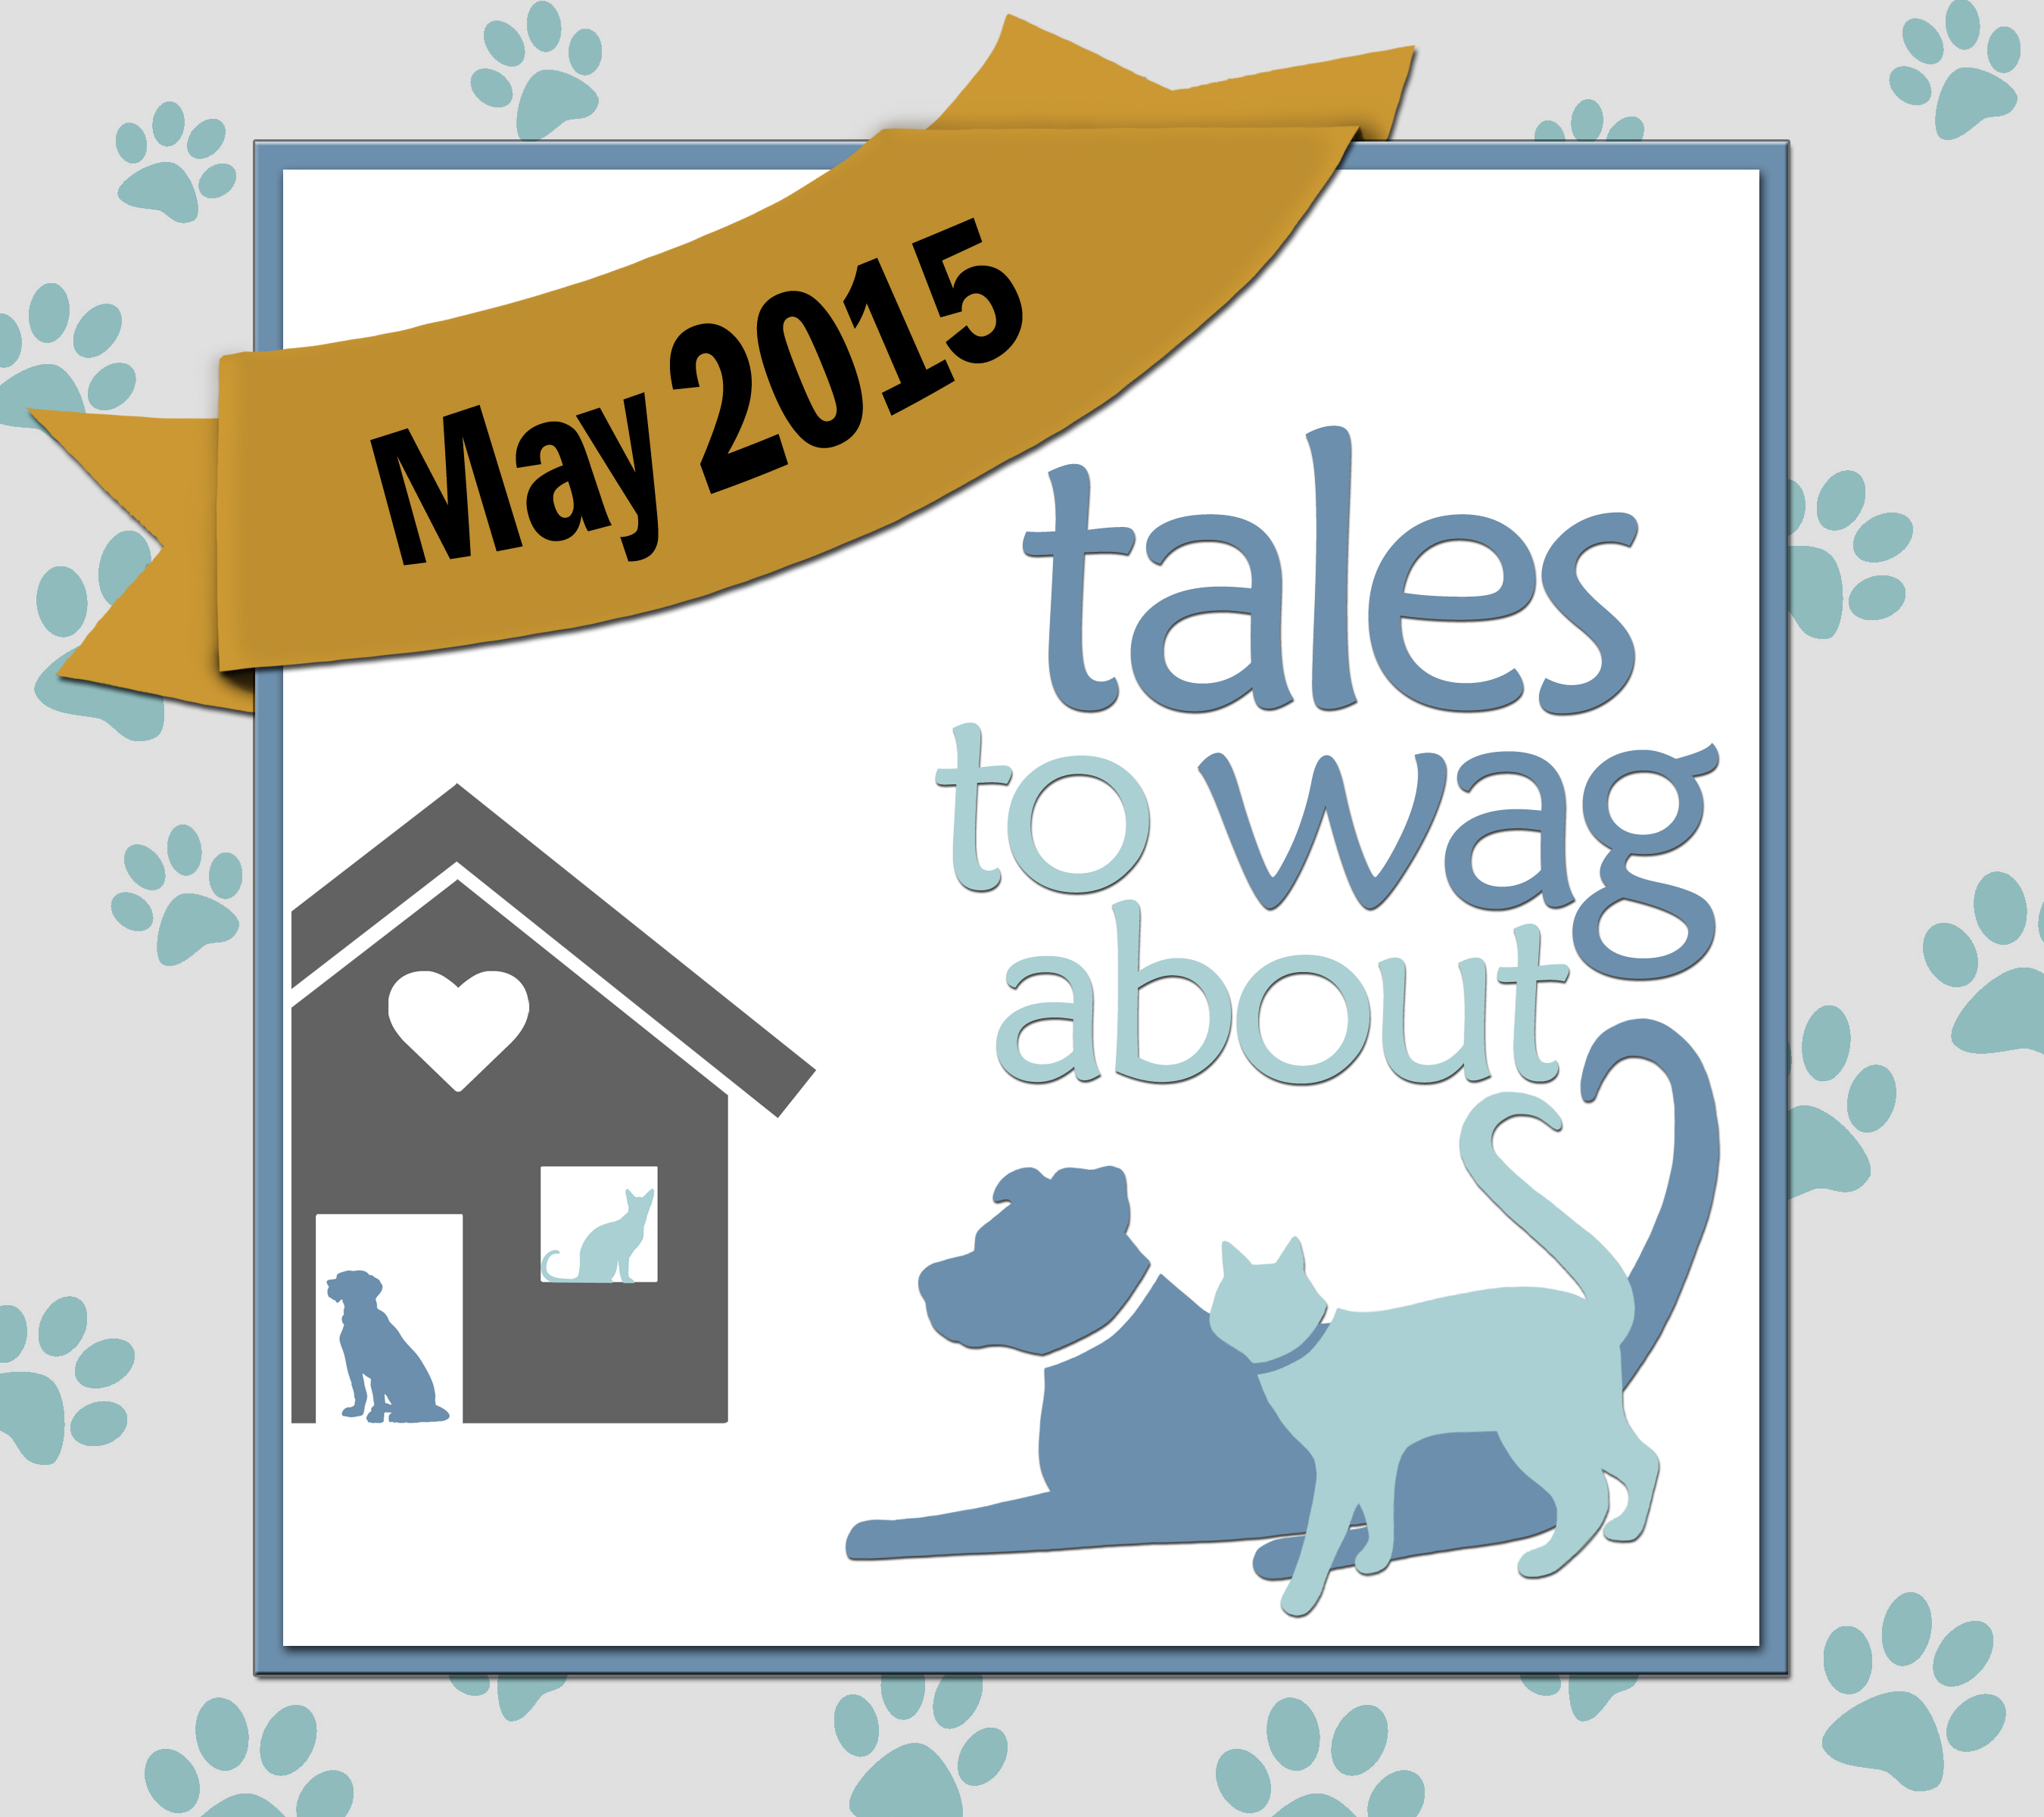 Tales to Wag About - May 2015